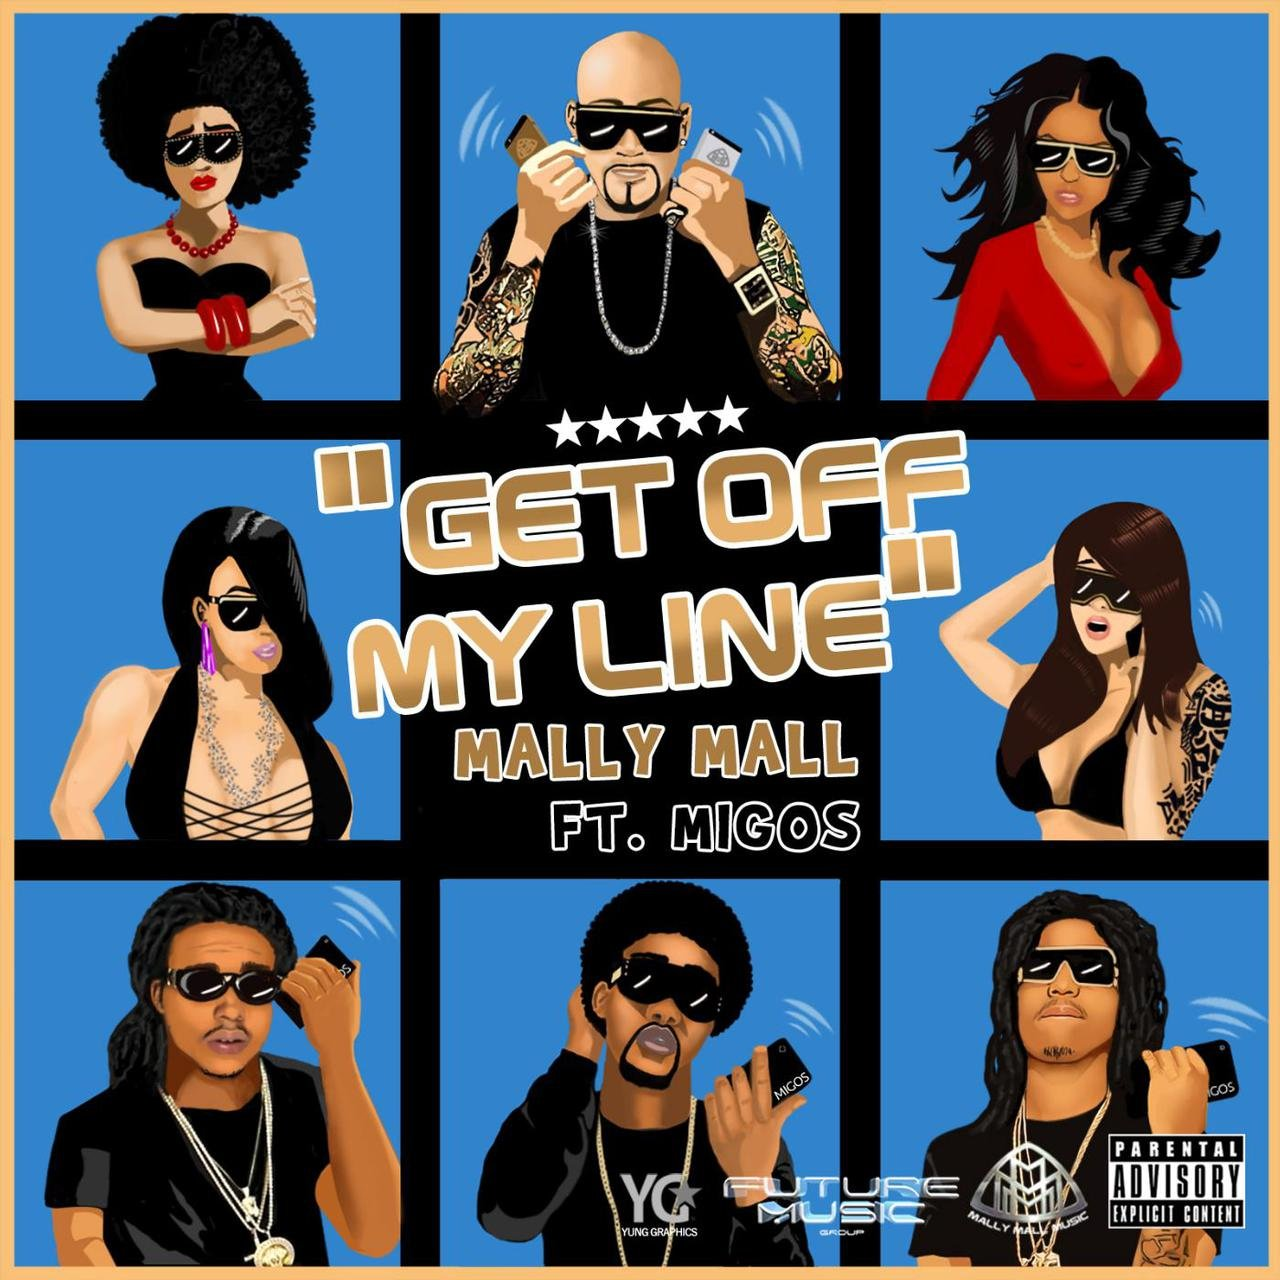 Get off My Line (feat. Migos)